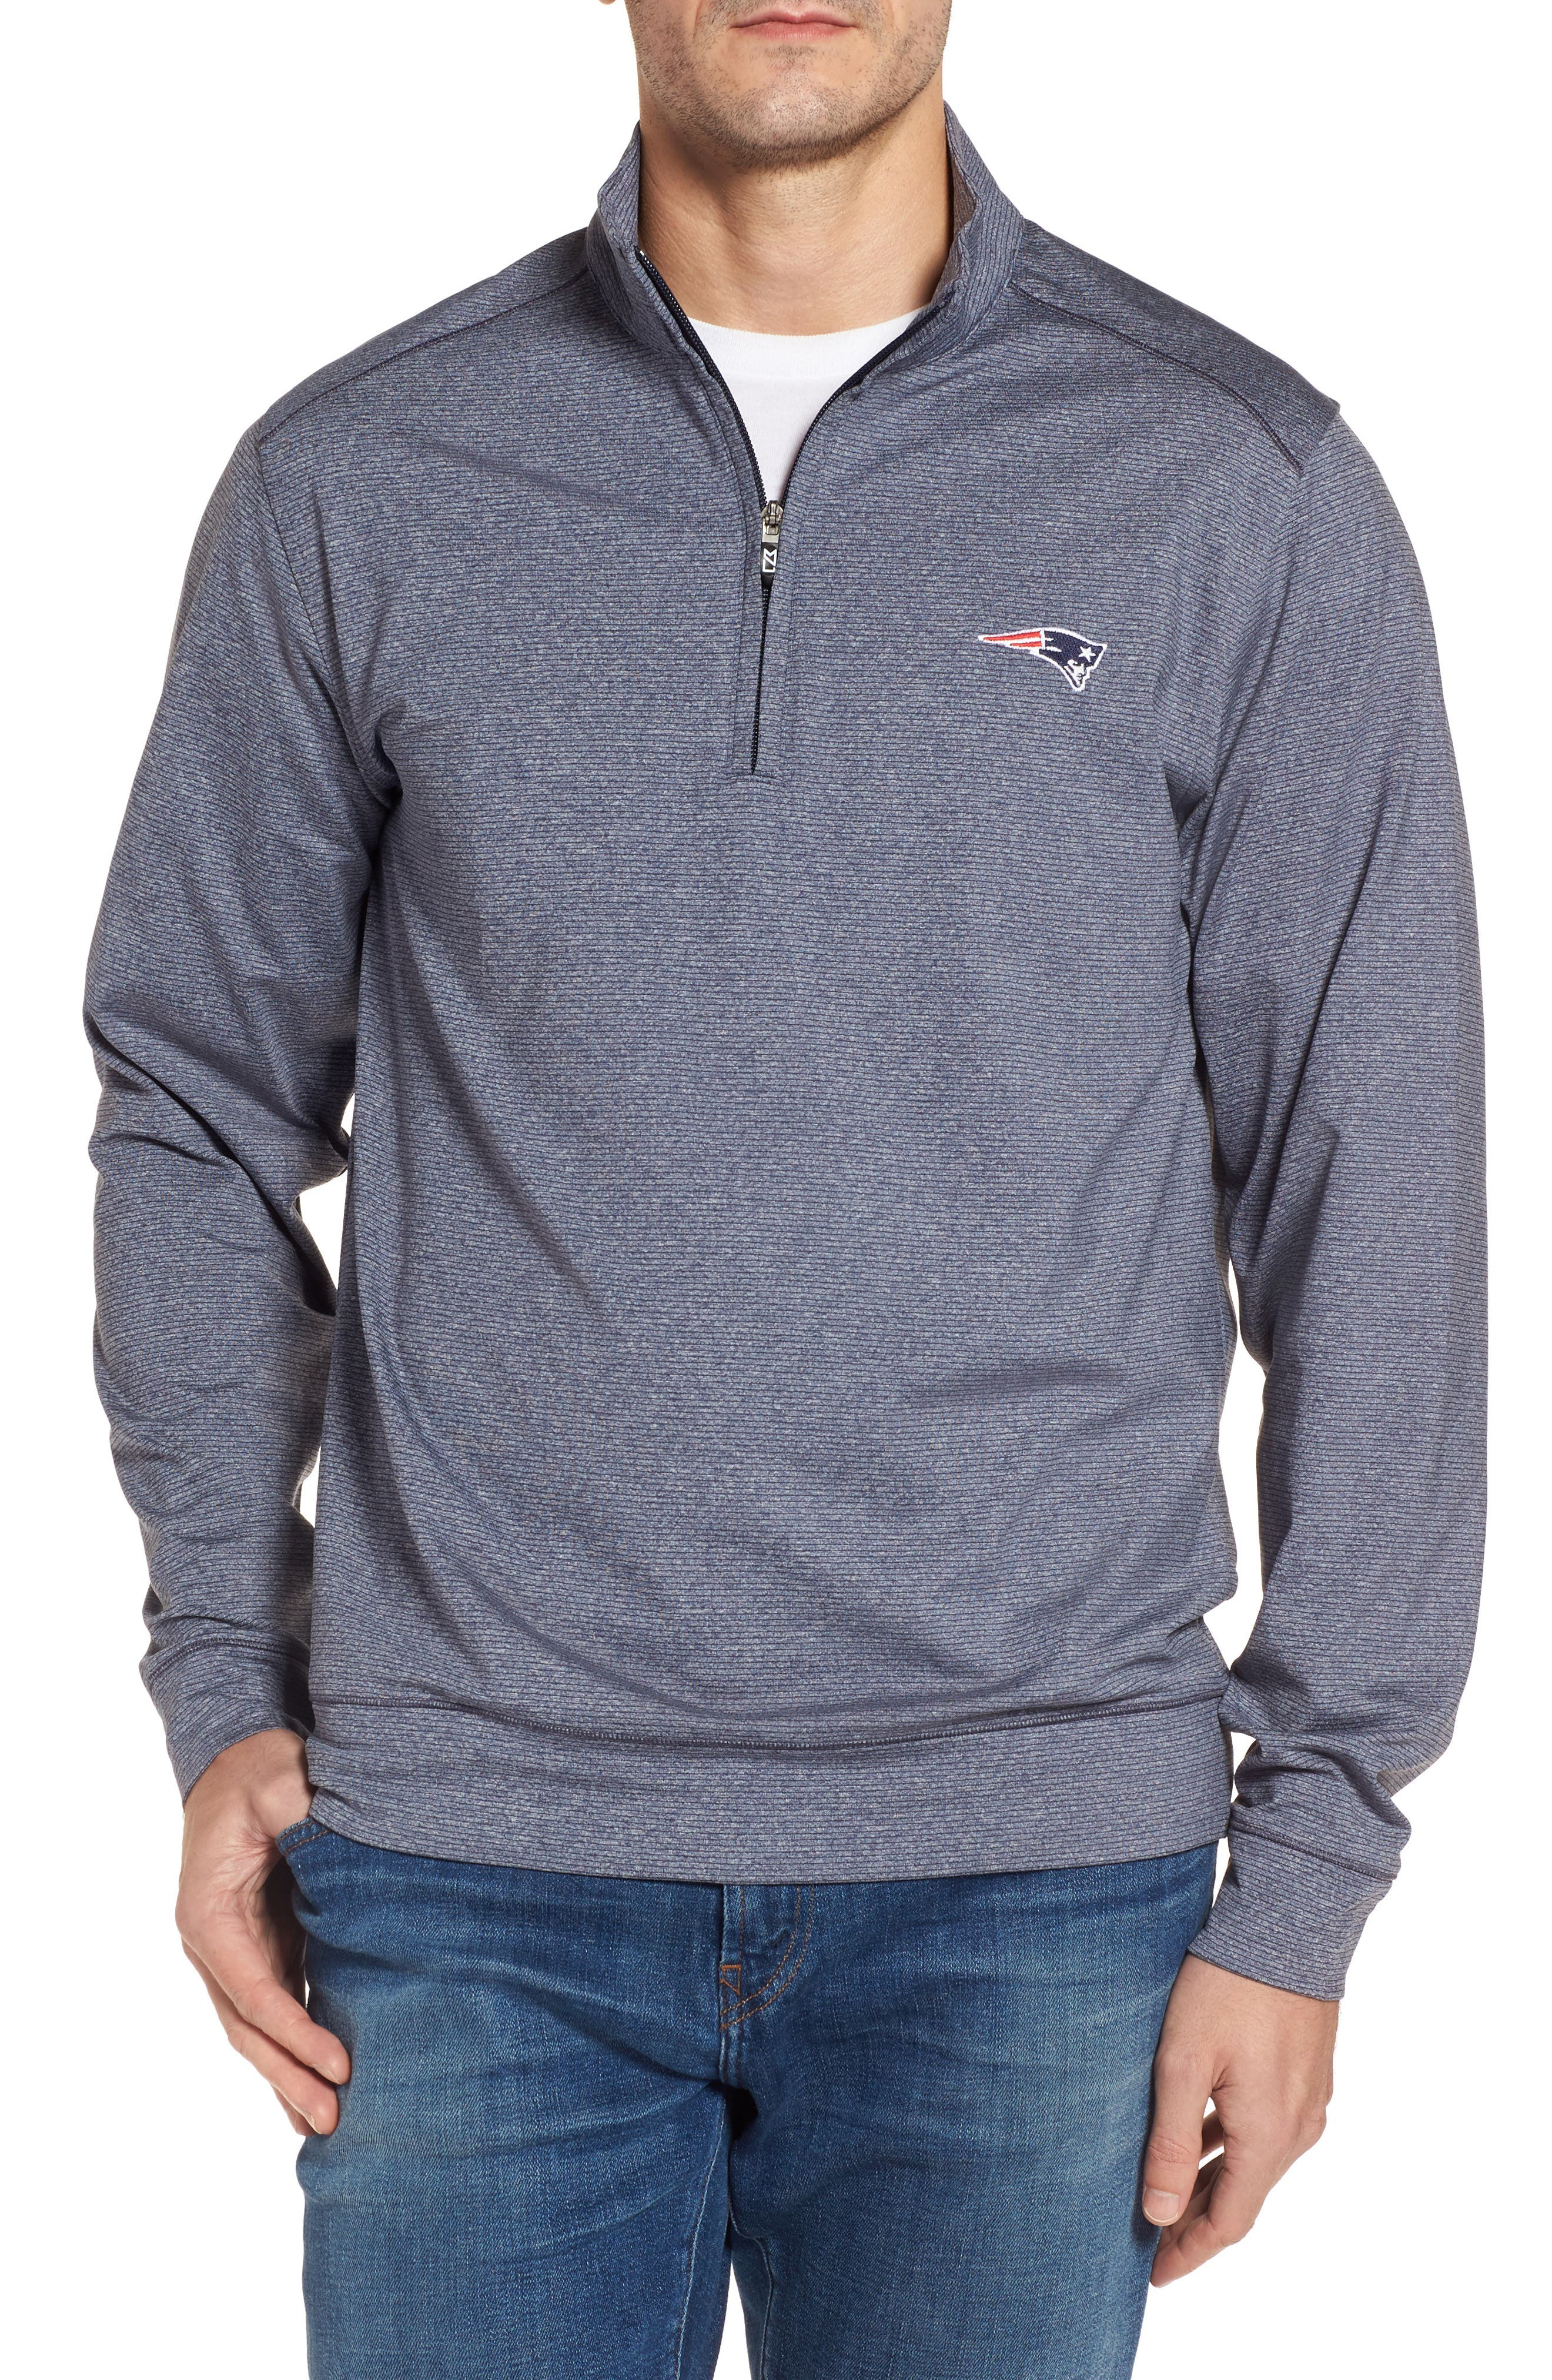 Cutter & Buck Shoreline - New England Patriots Half Zip Pullover